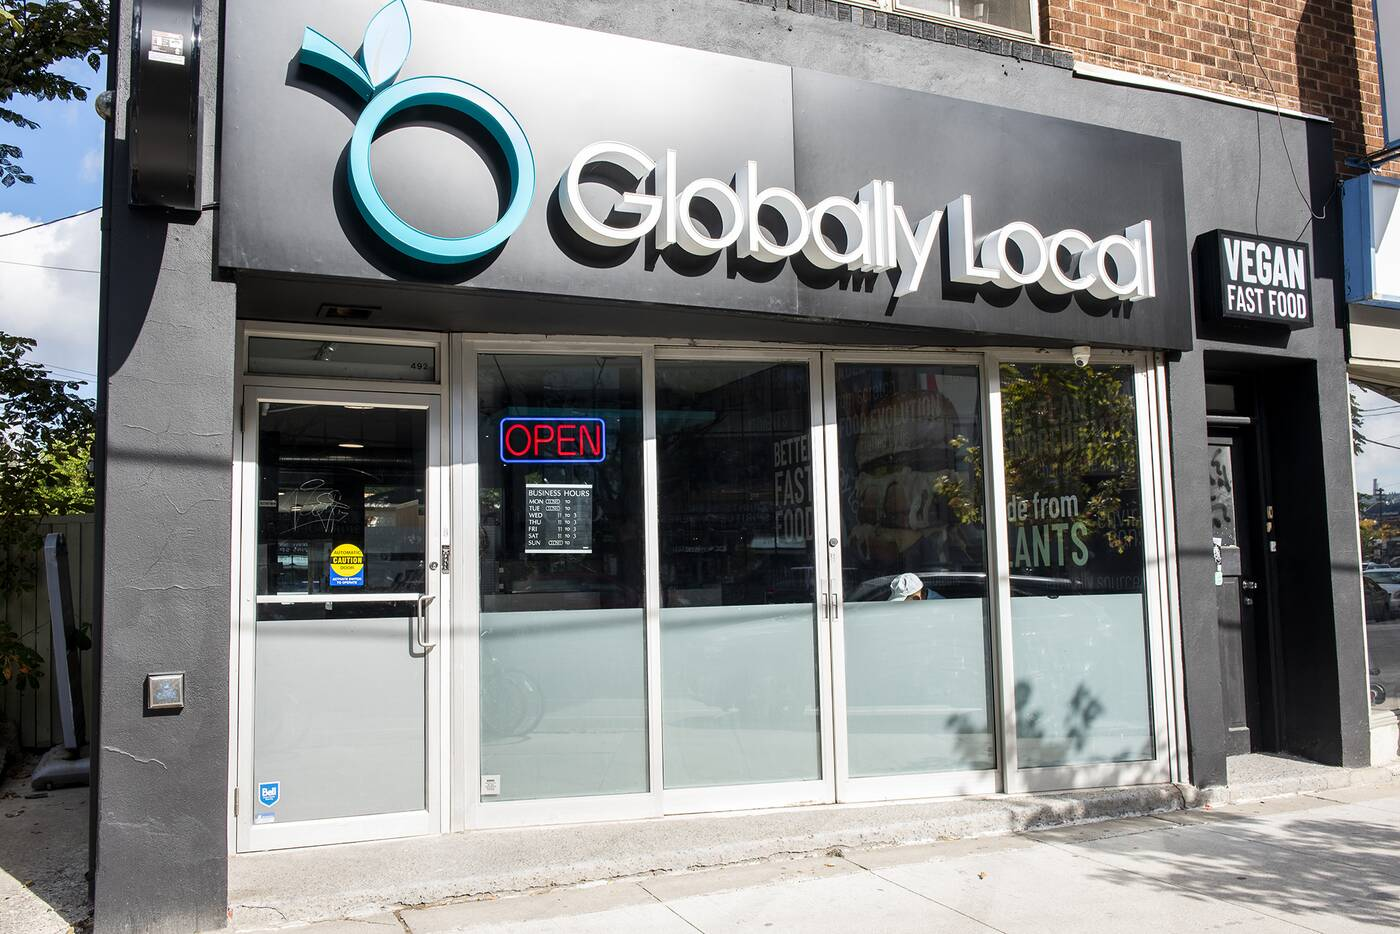 Globally Local Toronto